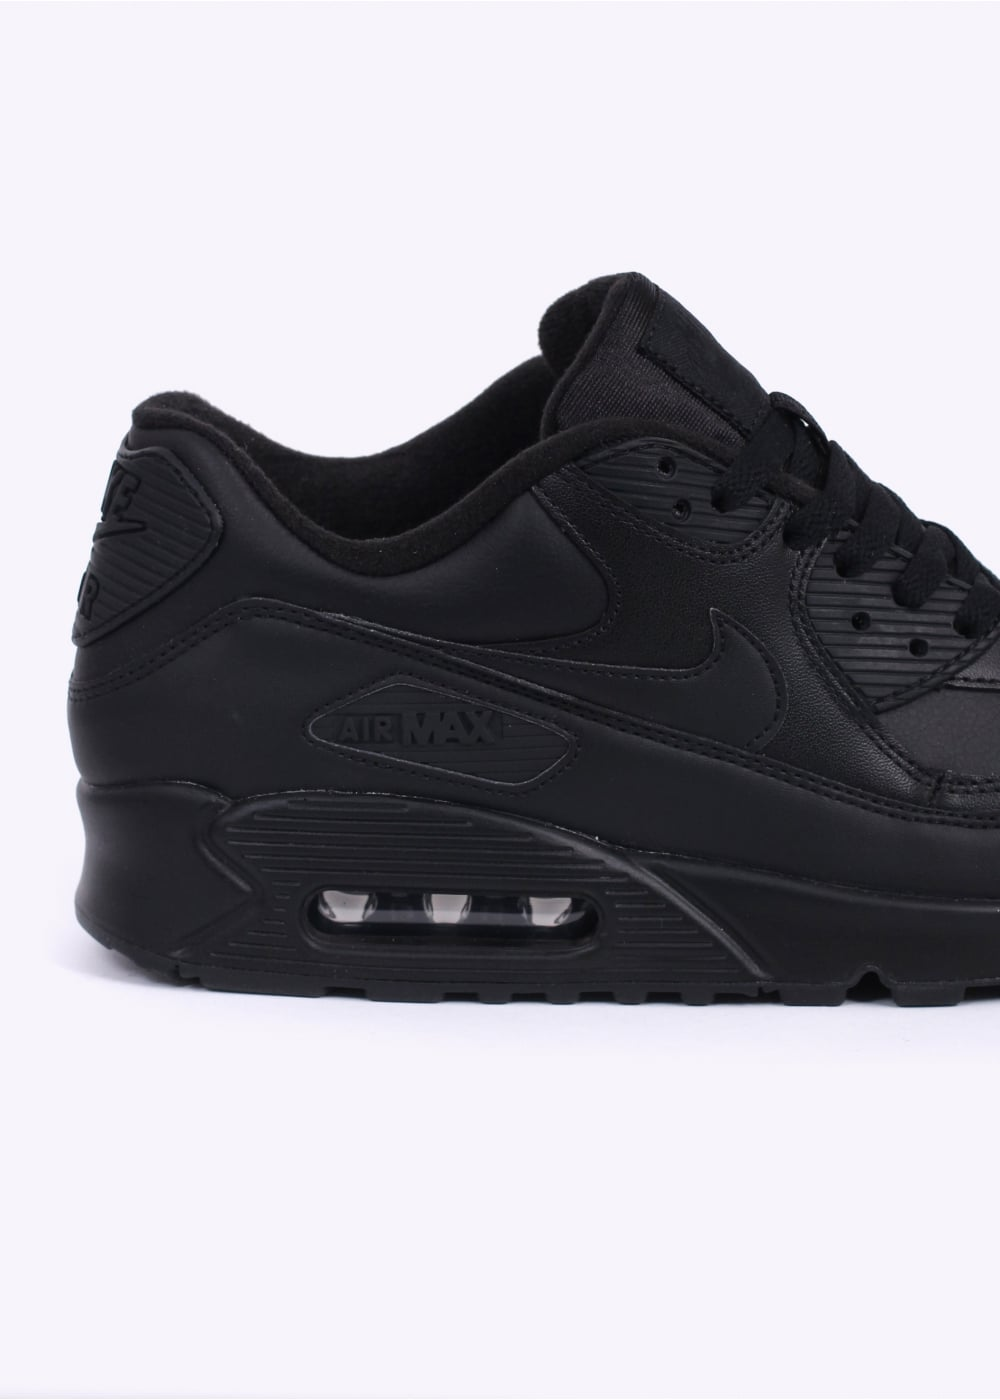 nike air max 90 trainers leather black. Black Bedroom Furniture Sets. Home Design Ideas